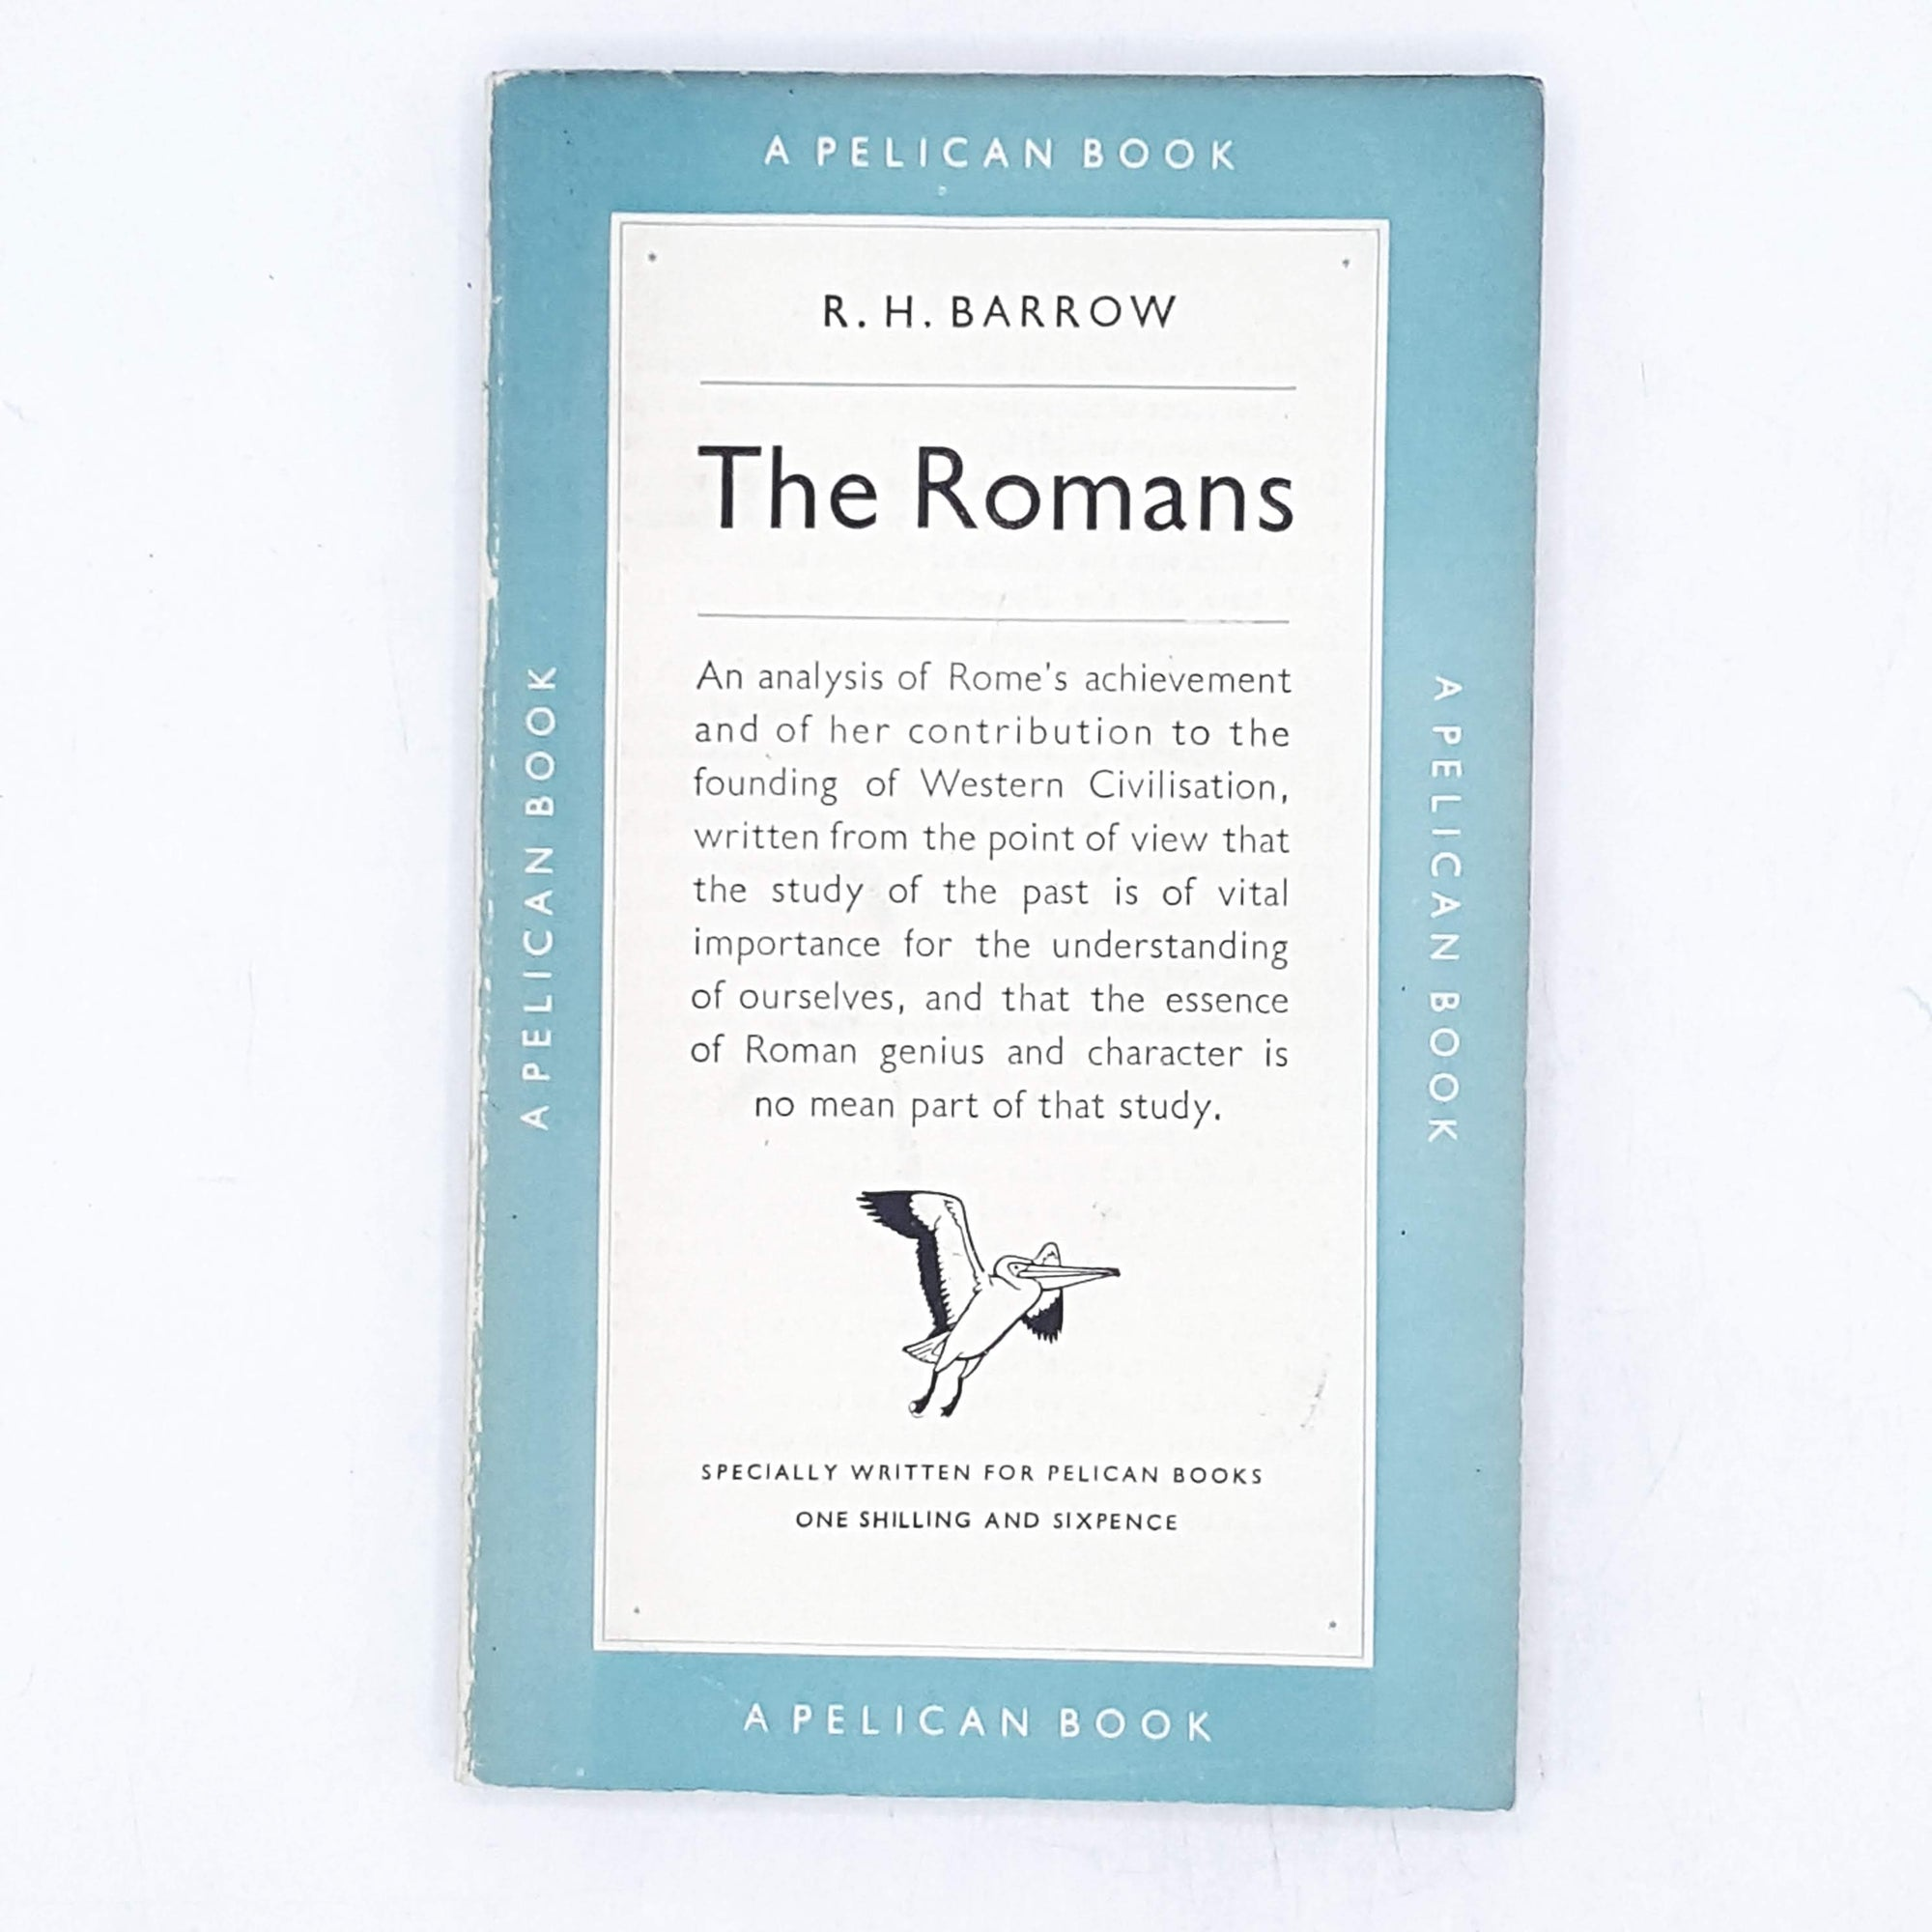 The Romans by R. H. Barrow 1949